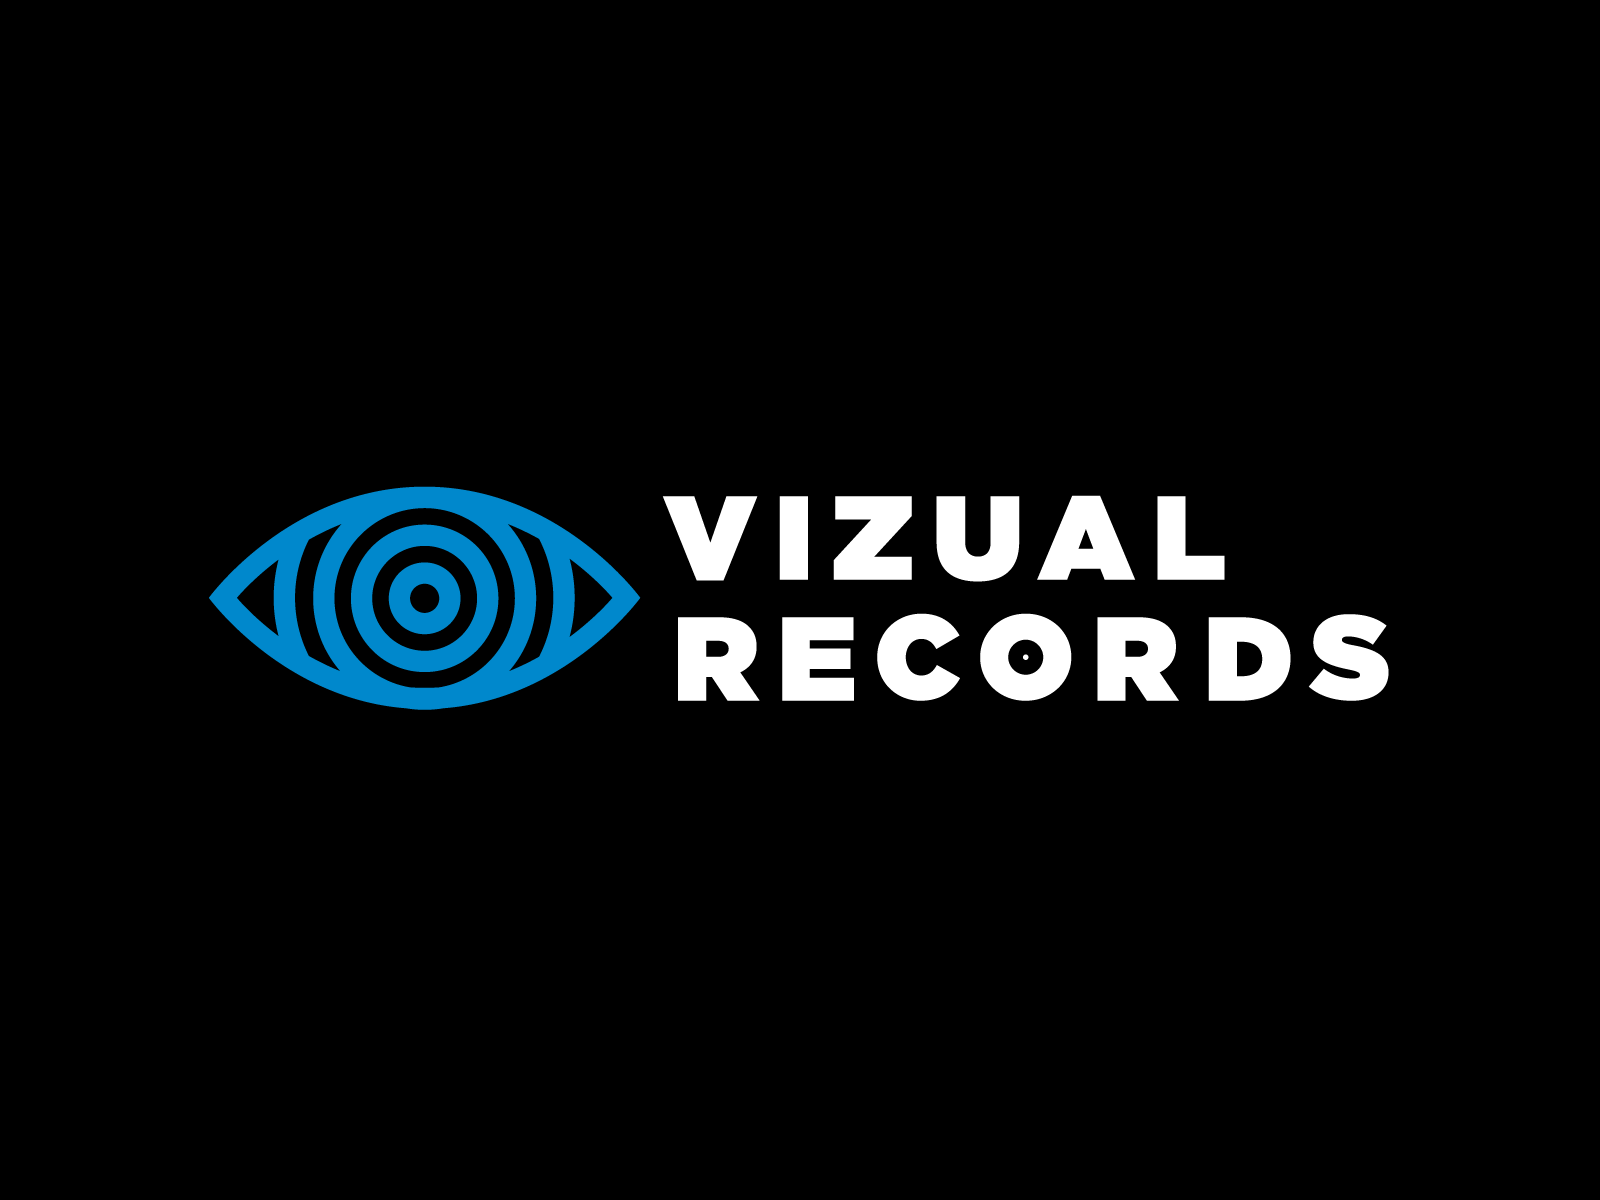 Vizual Records